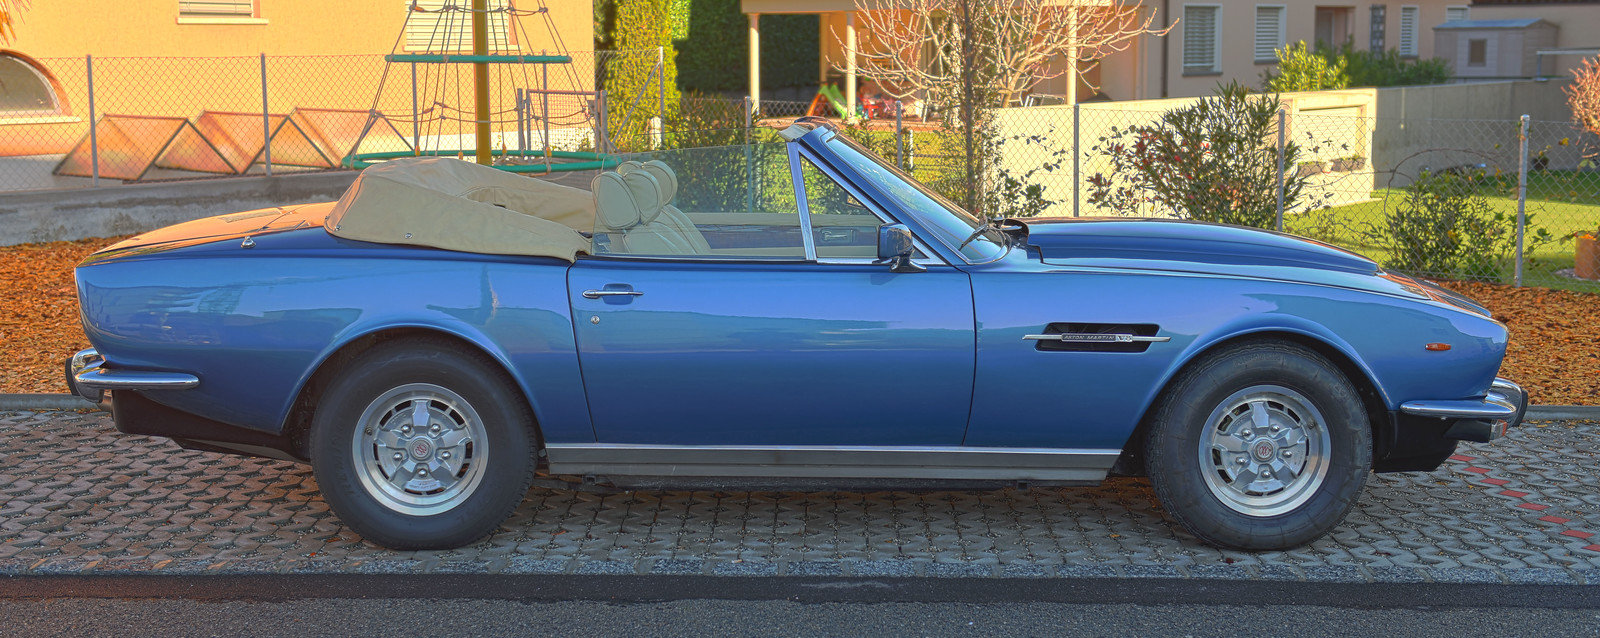 1980 Aston Martin Volante RHD For Sale (picture 2 of 6)